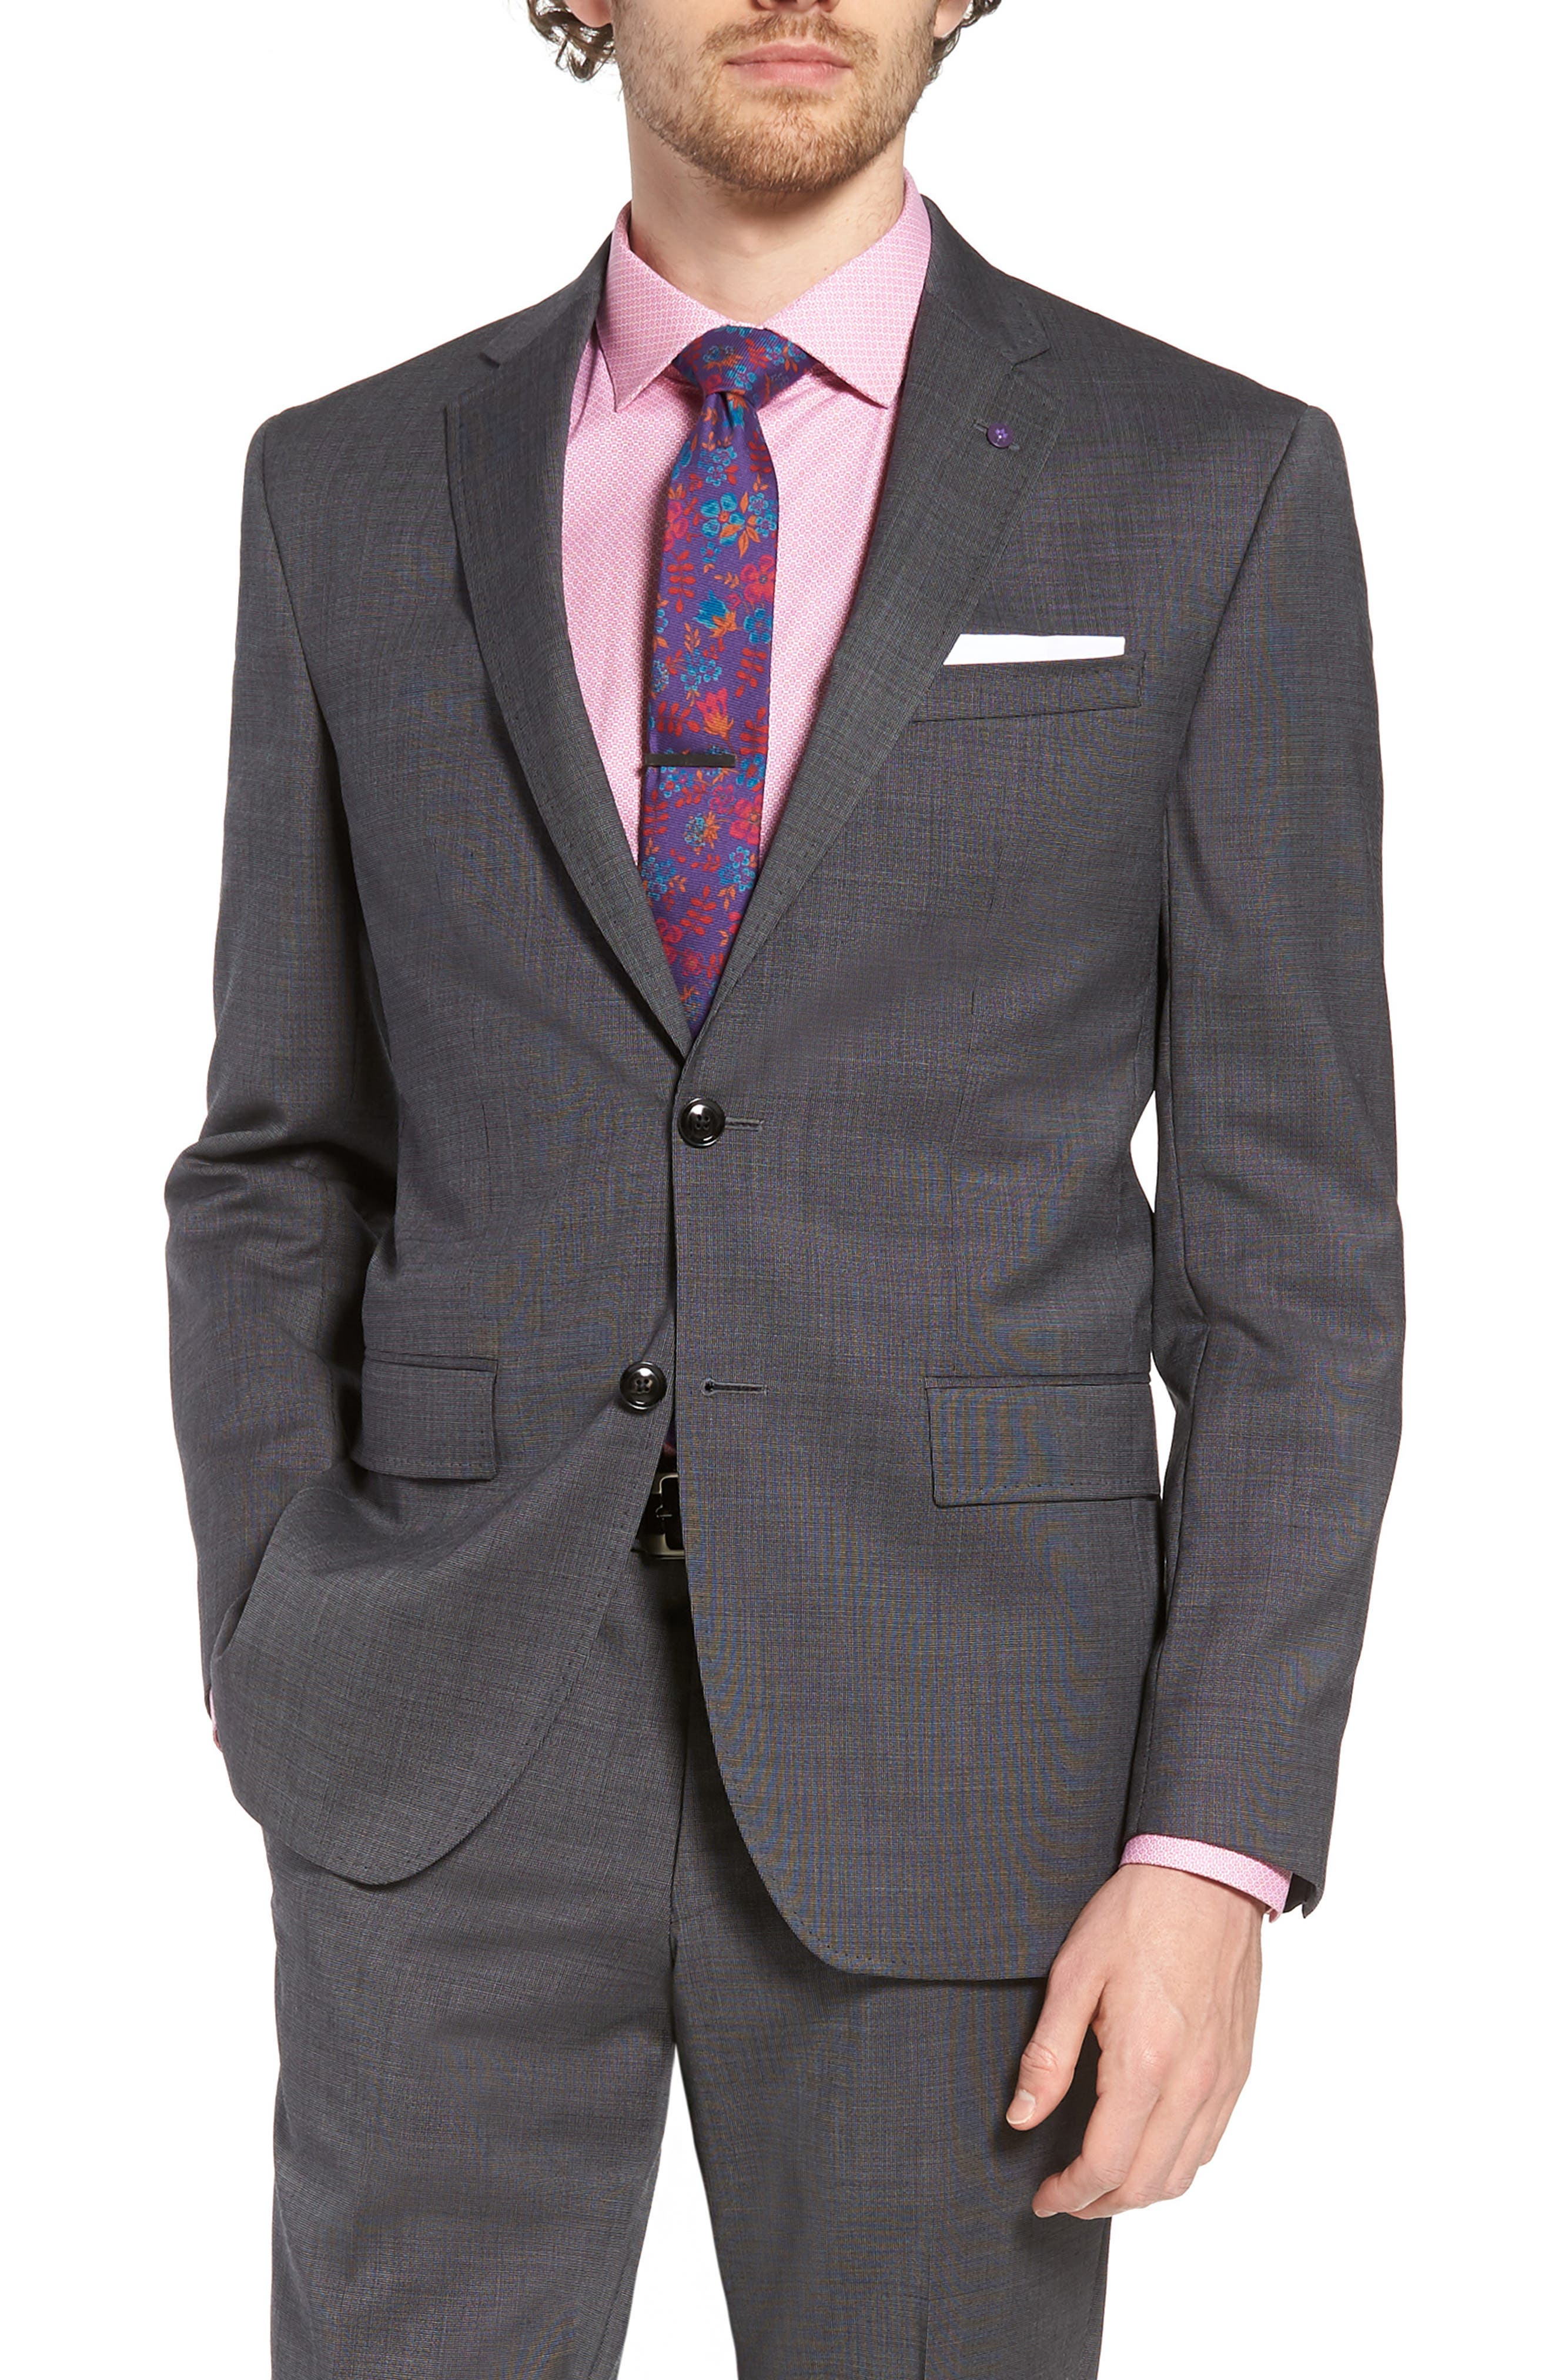 Jay Trim Fit Solid Wool Suit,                             Alternate thumbnail 5, color,                             Grey